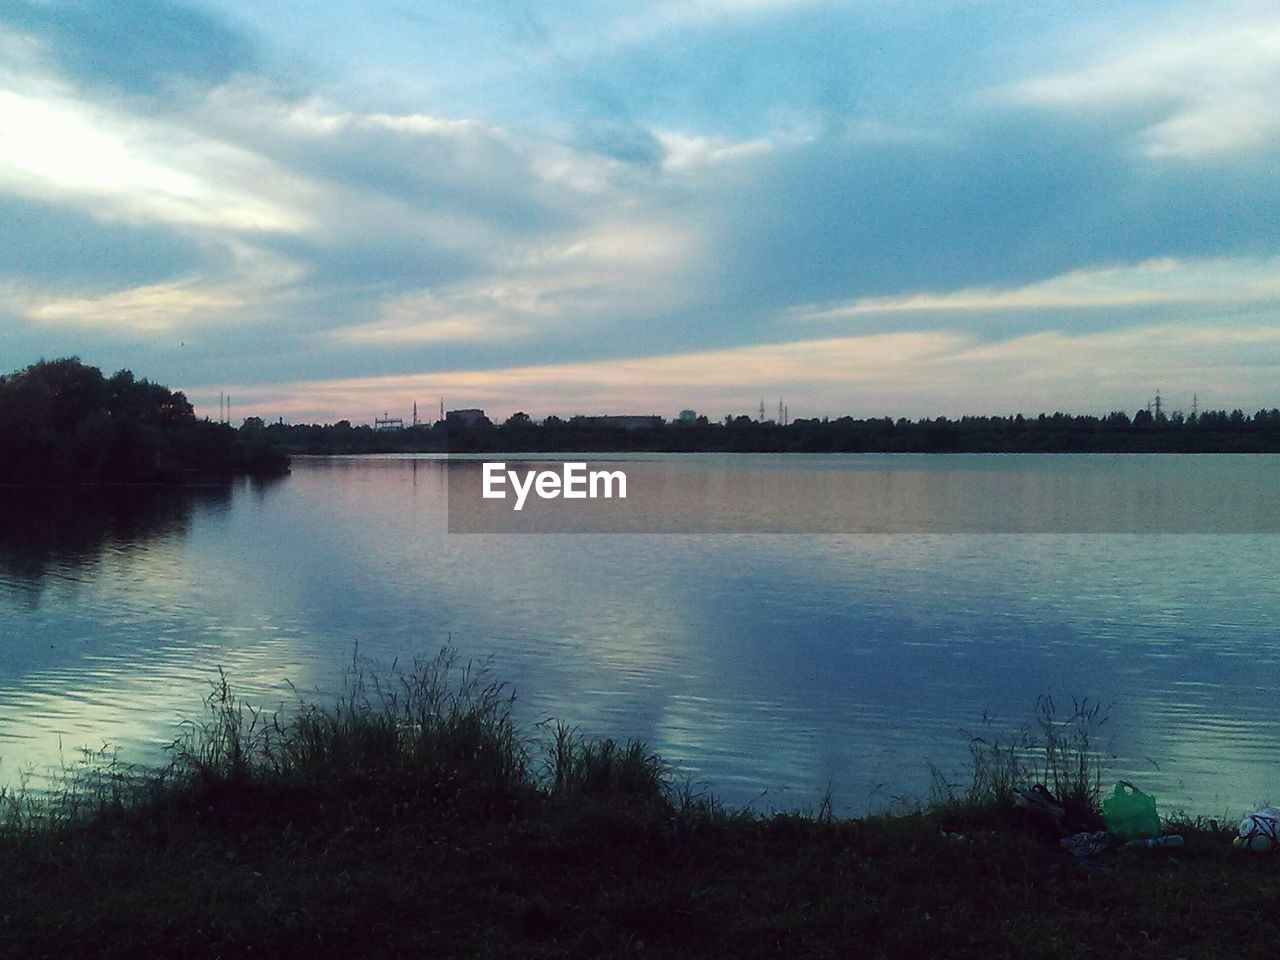 water, sky, cloud - sky, tranquil scene, nature, lake, scenics, tranquility, beauty in nature, no people, reflection, outdoors, tree, travel destinations, landscape, sunset, day, grass